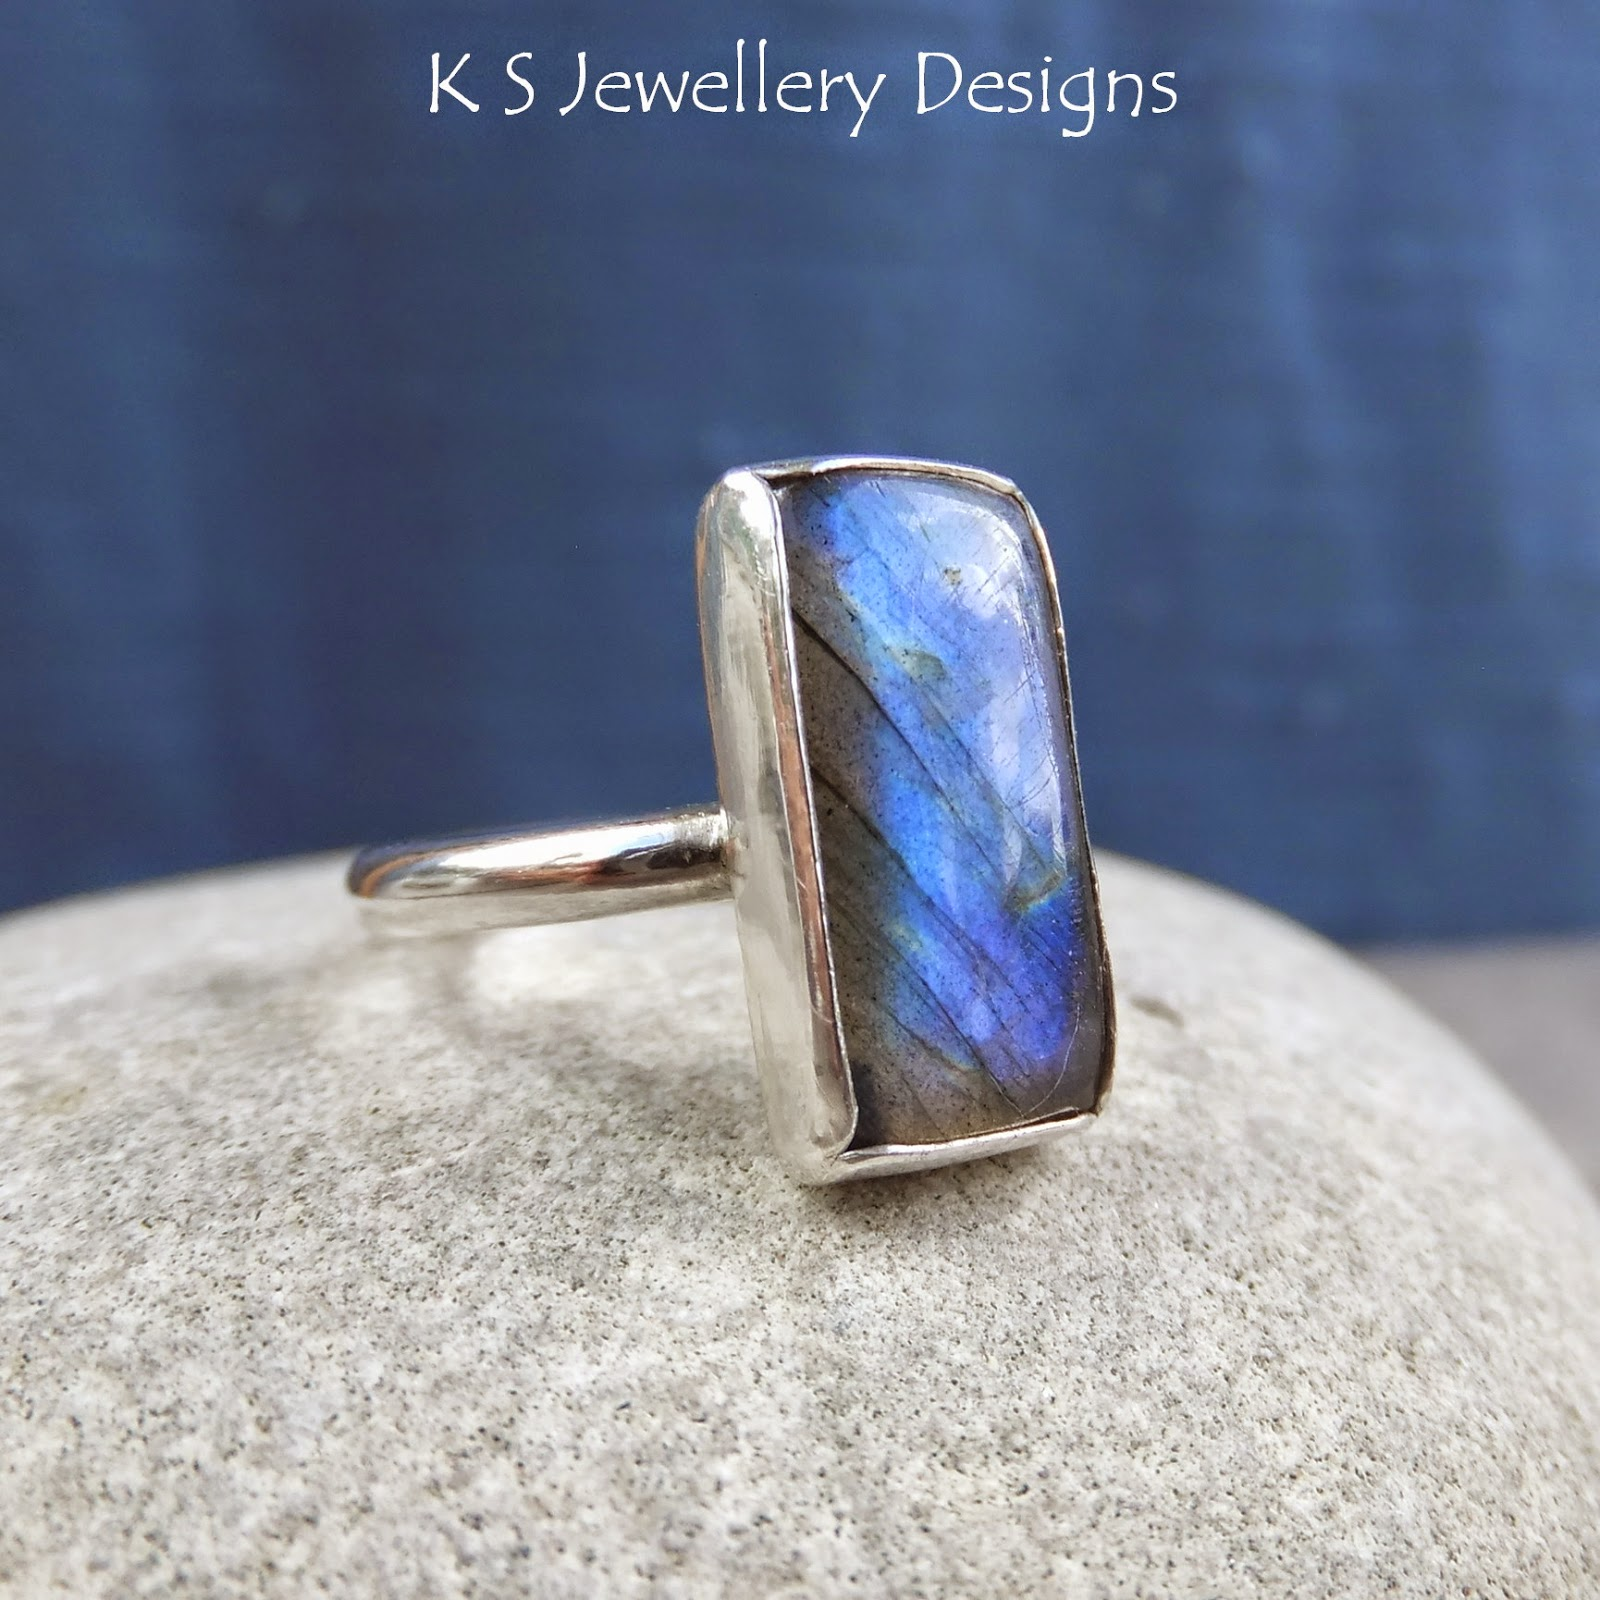 http://ksjewellerydesigns.co.uk/ourshop/prod_3259561-Labradorite-Sterling-Silver-Gemstone-Ring-MADE-TO-ORDER.html